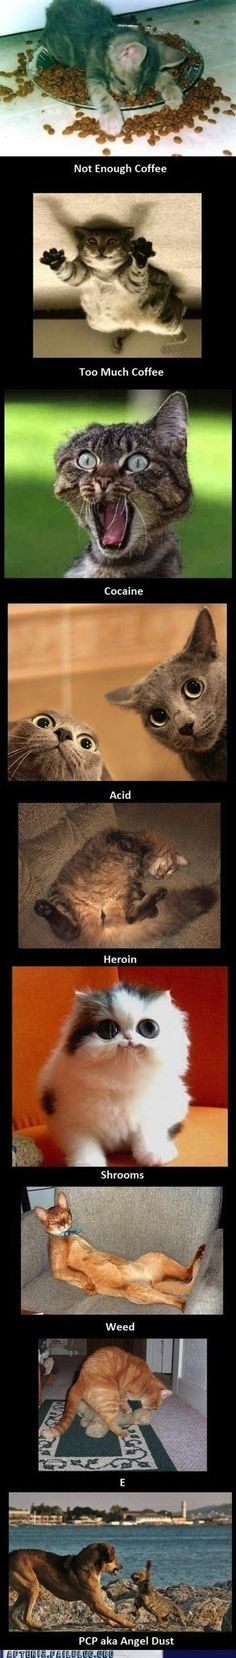 kittehs on drugs